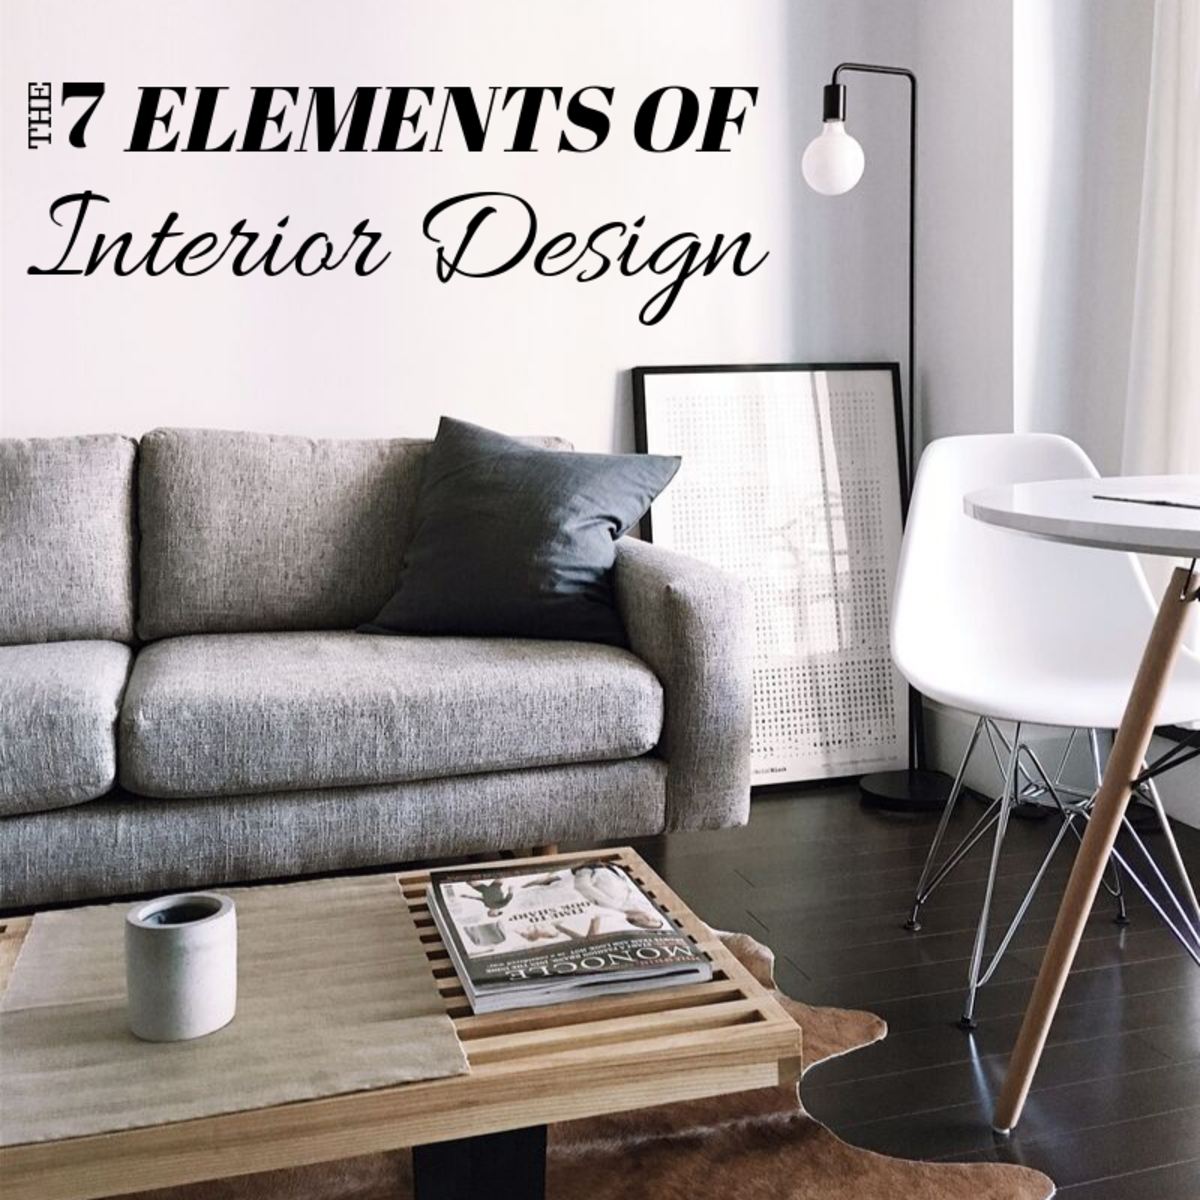 The Seven Elements of Interior Design